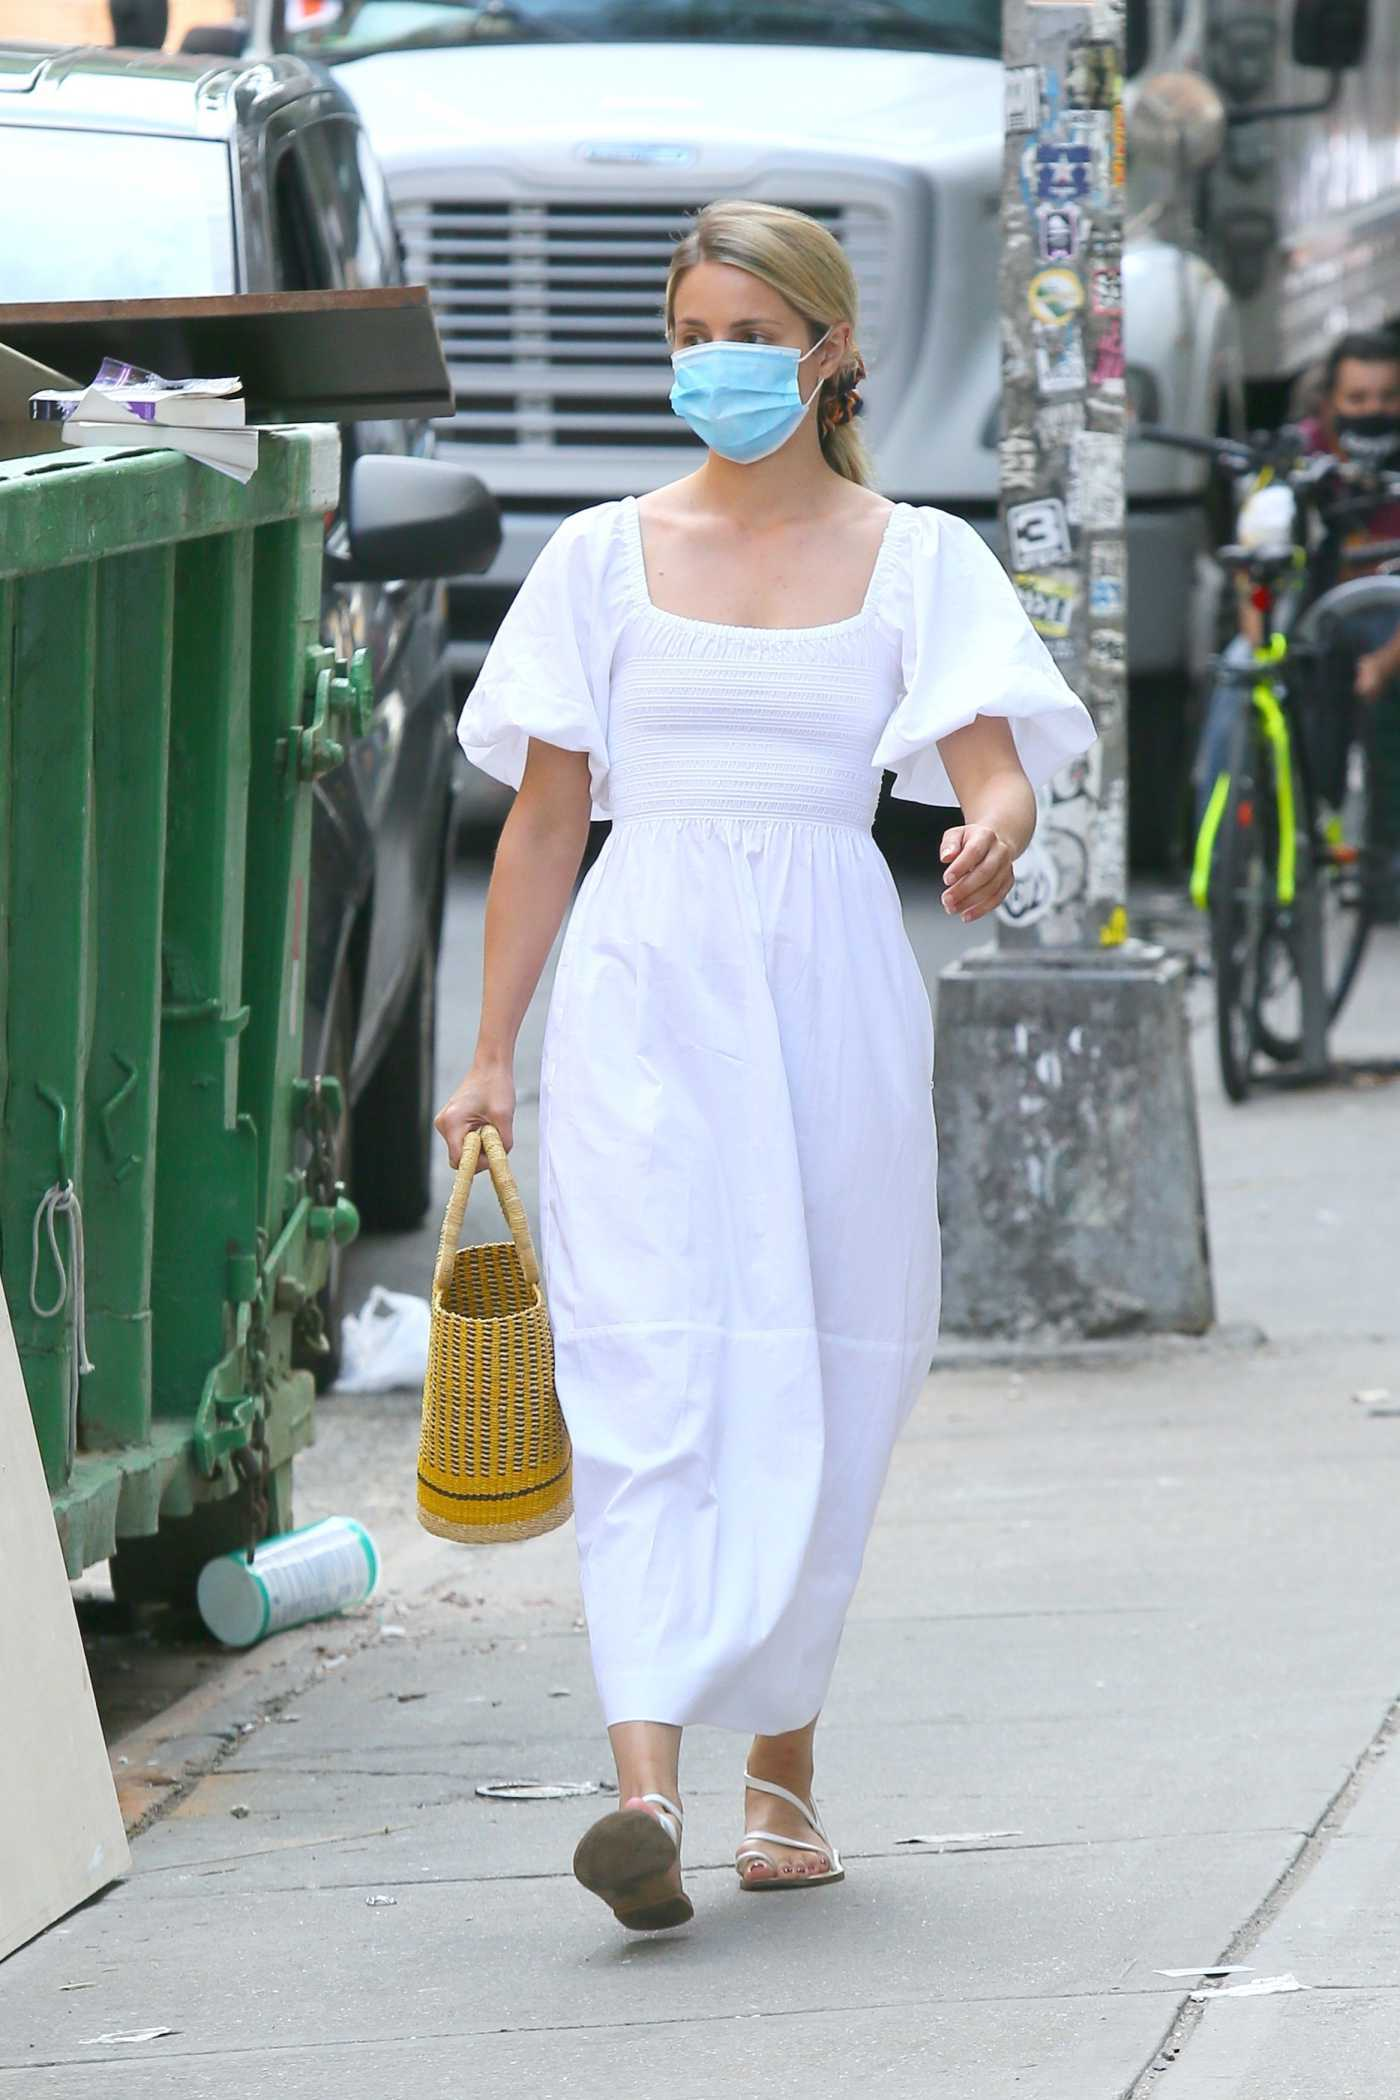 Dianna Agron in a White Dress Was Spotted Out in Soho, New York 09/03/2020